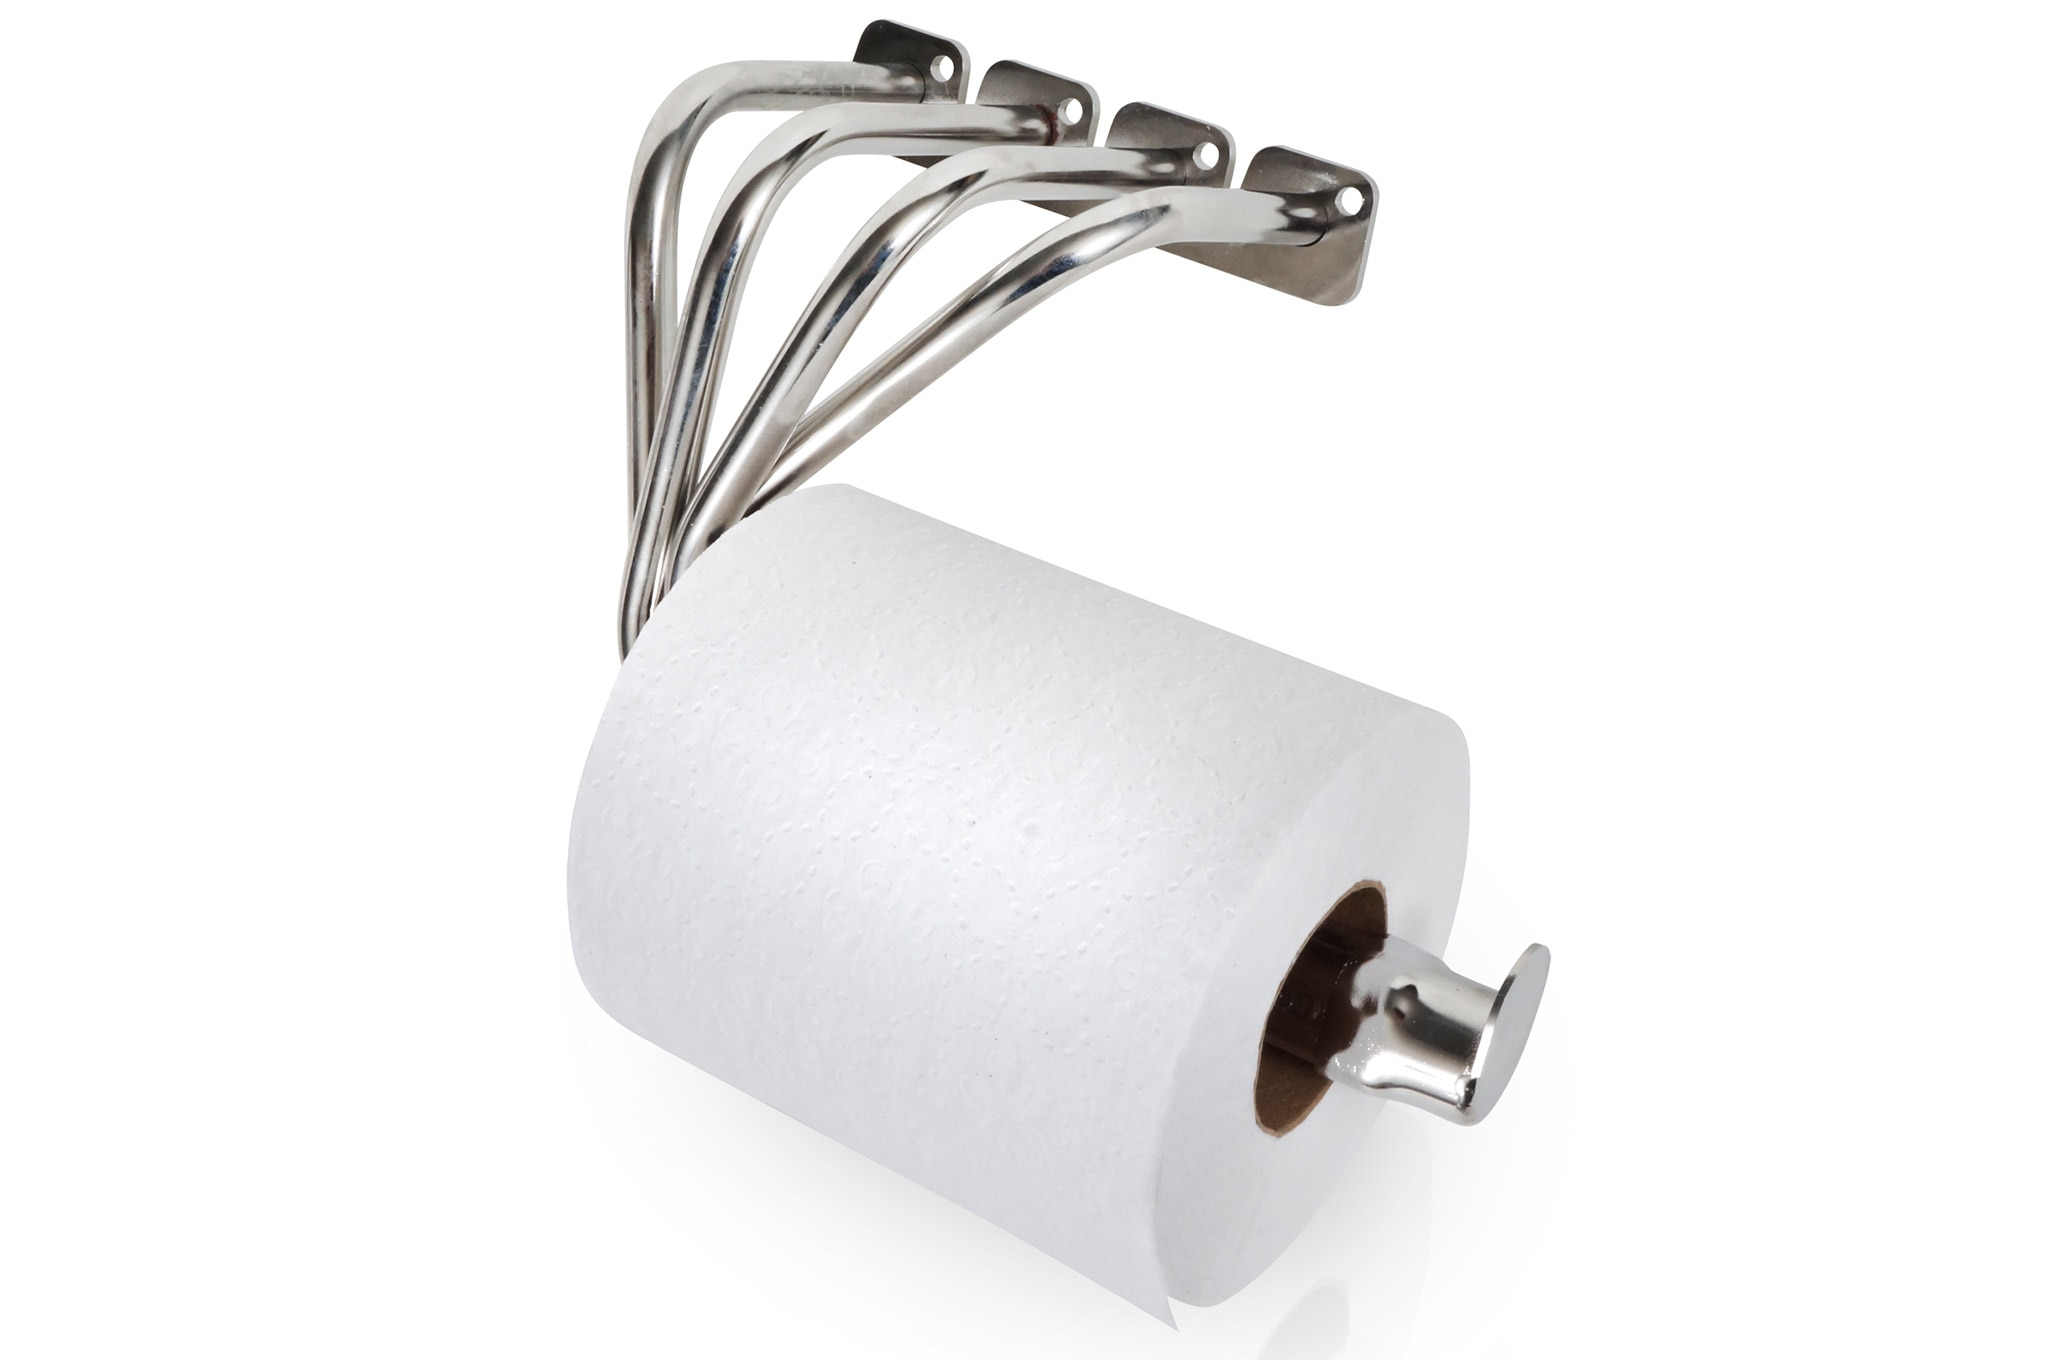 Enclosed Toilet Paper Holder Dress Up Your Man Cave With Urge Gear Hot Rod Network